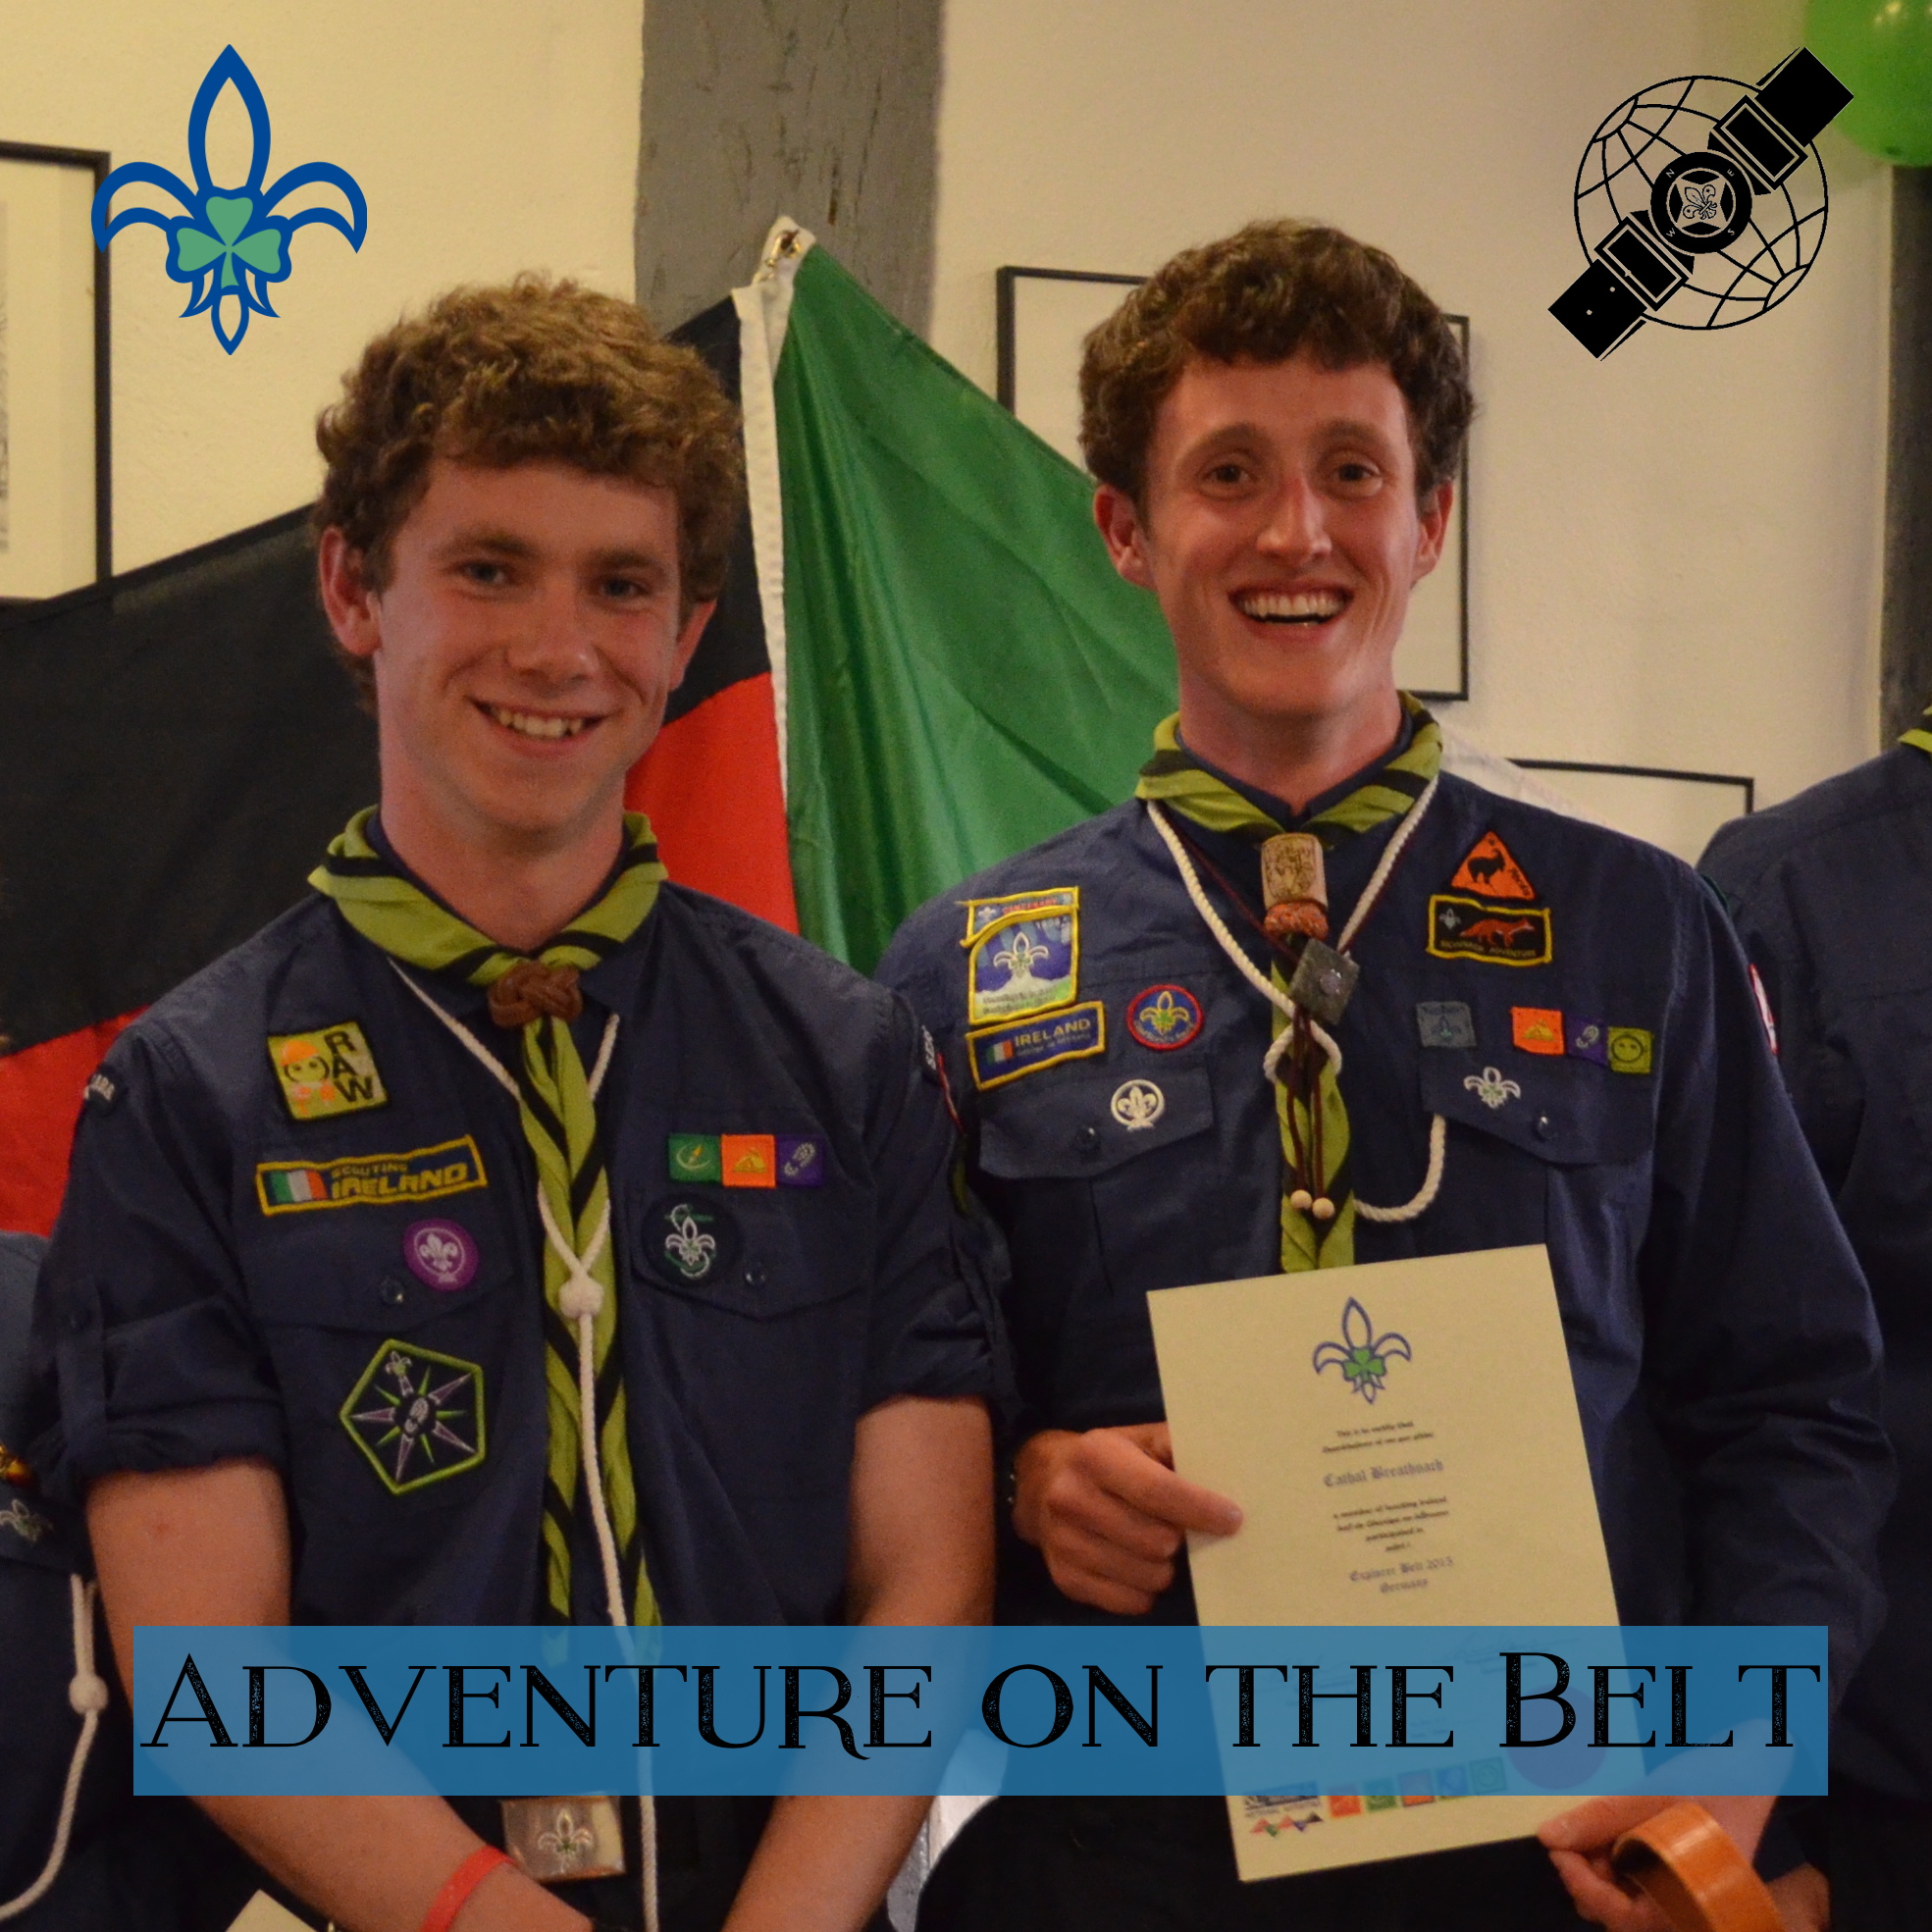 Fionn (right) and Cathal (left) after receiving their belts at the award ceremony